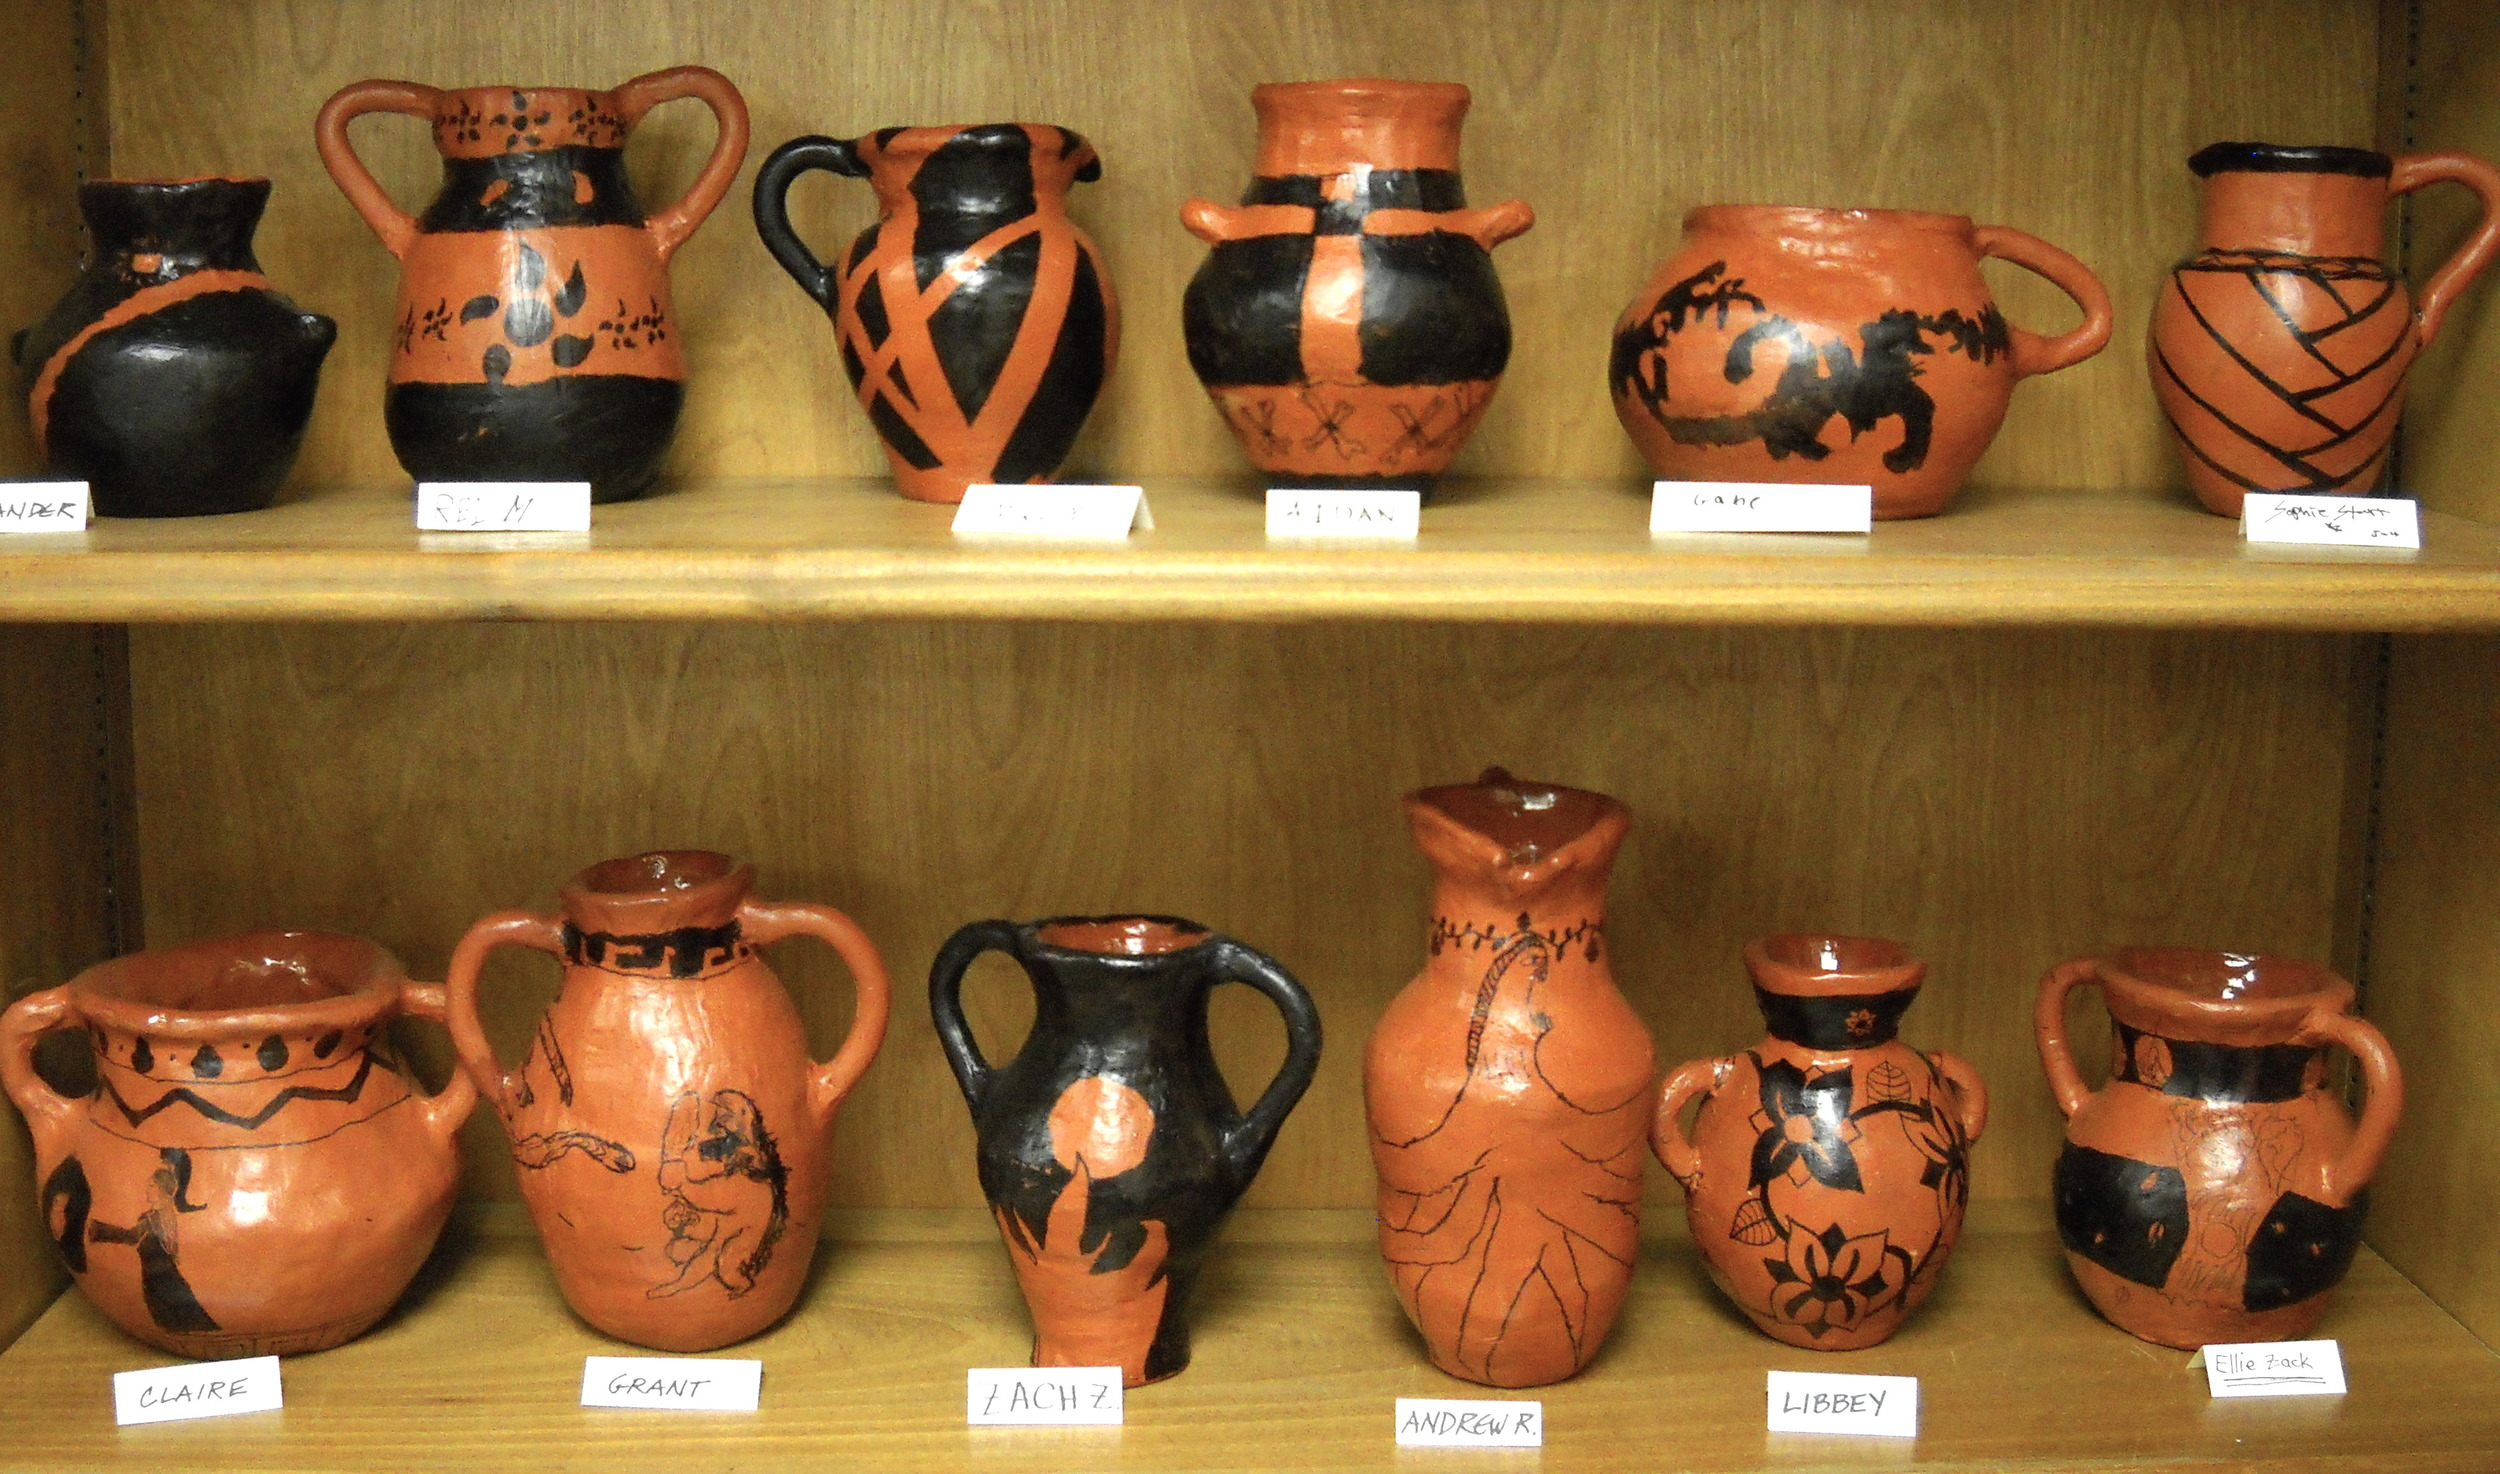 Greek Style Coil-Built Ceramic Vessels